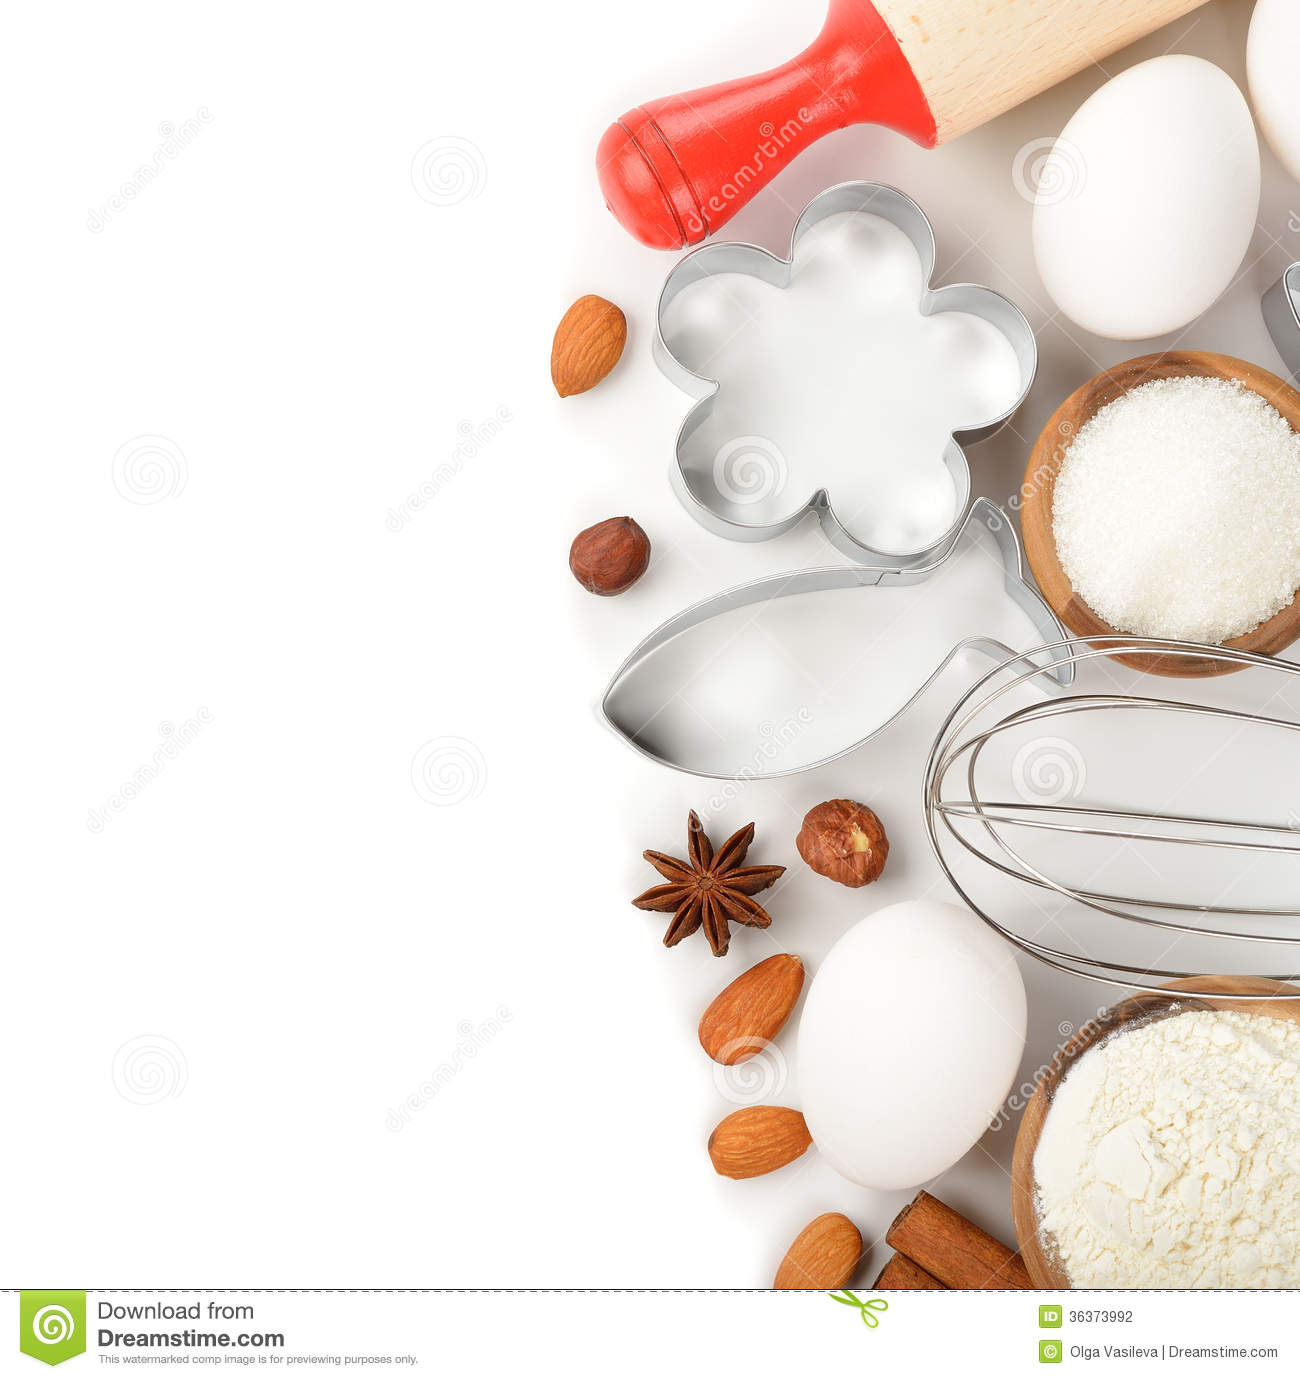 Bakery Wallpaper Hd Ingredients For Baking Stock Photography Image 36373992